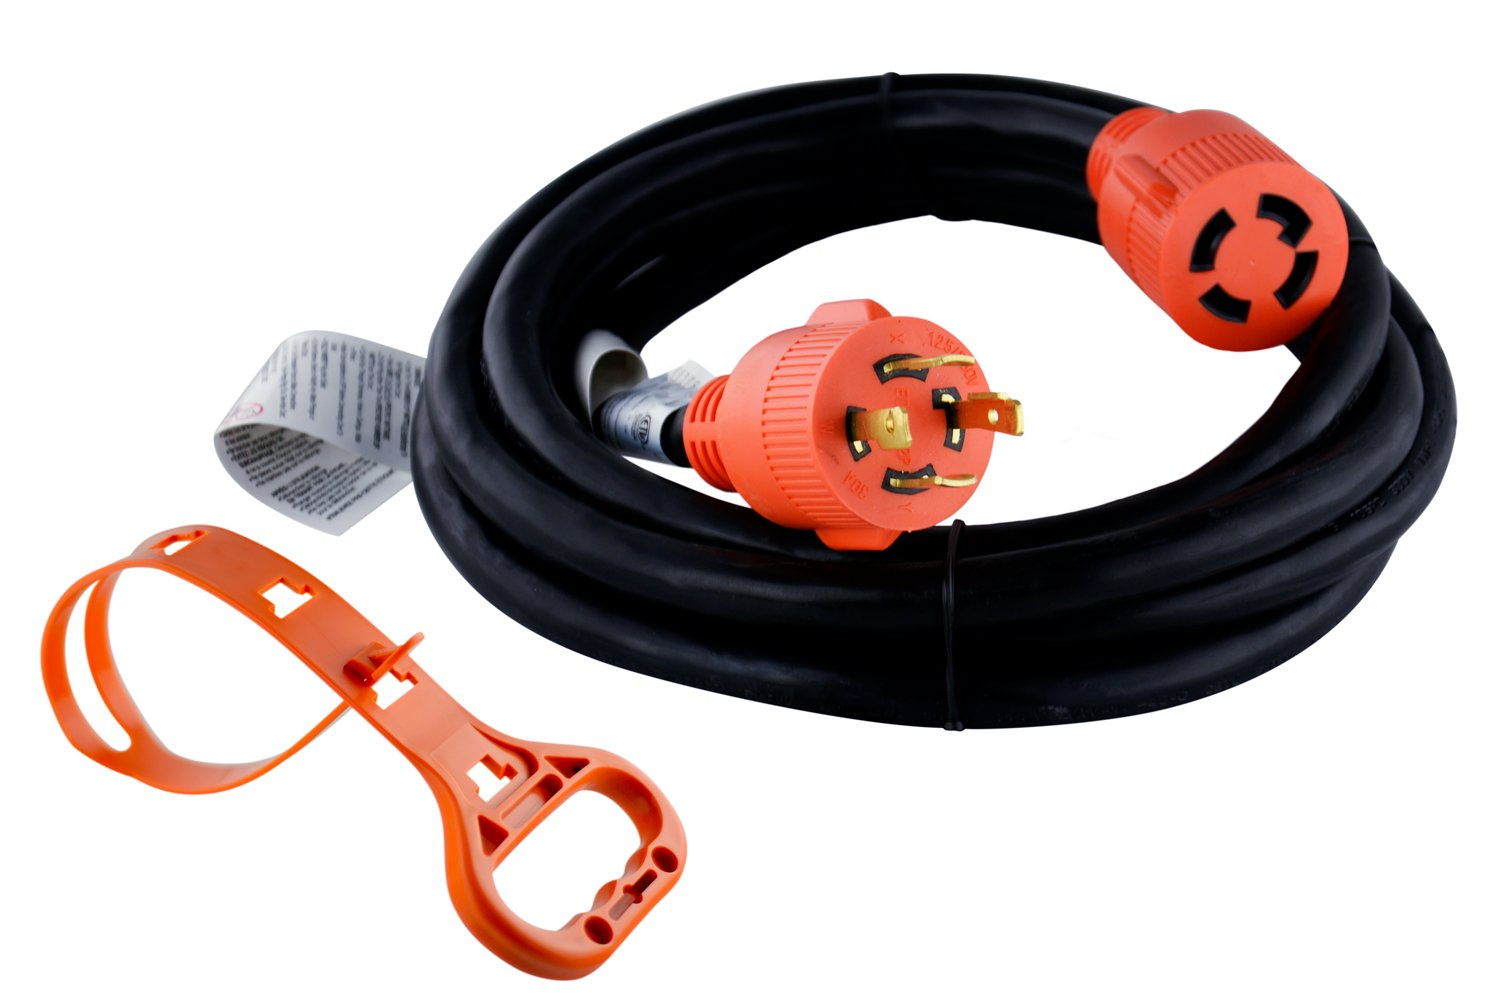 GoWISE Power Generator Extension Cord w/ Cord Organizer (L14 30AMP/4 PRONGS - 10 FEET)